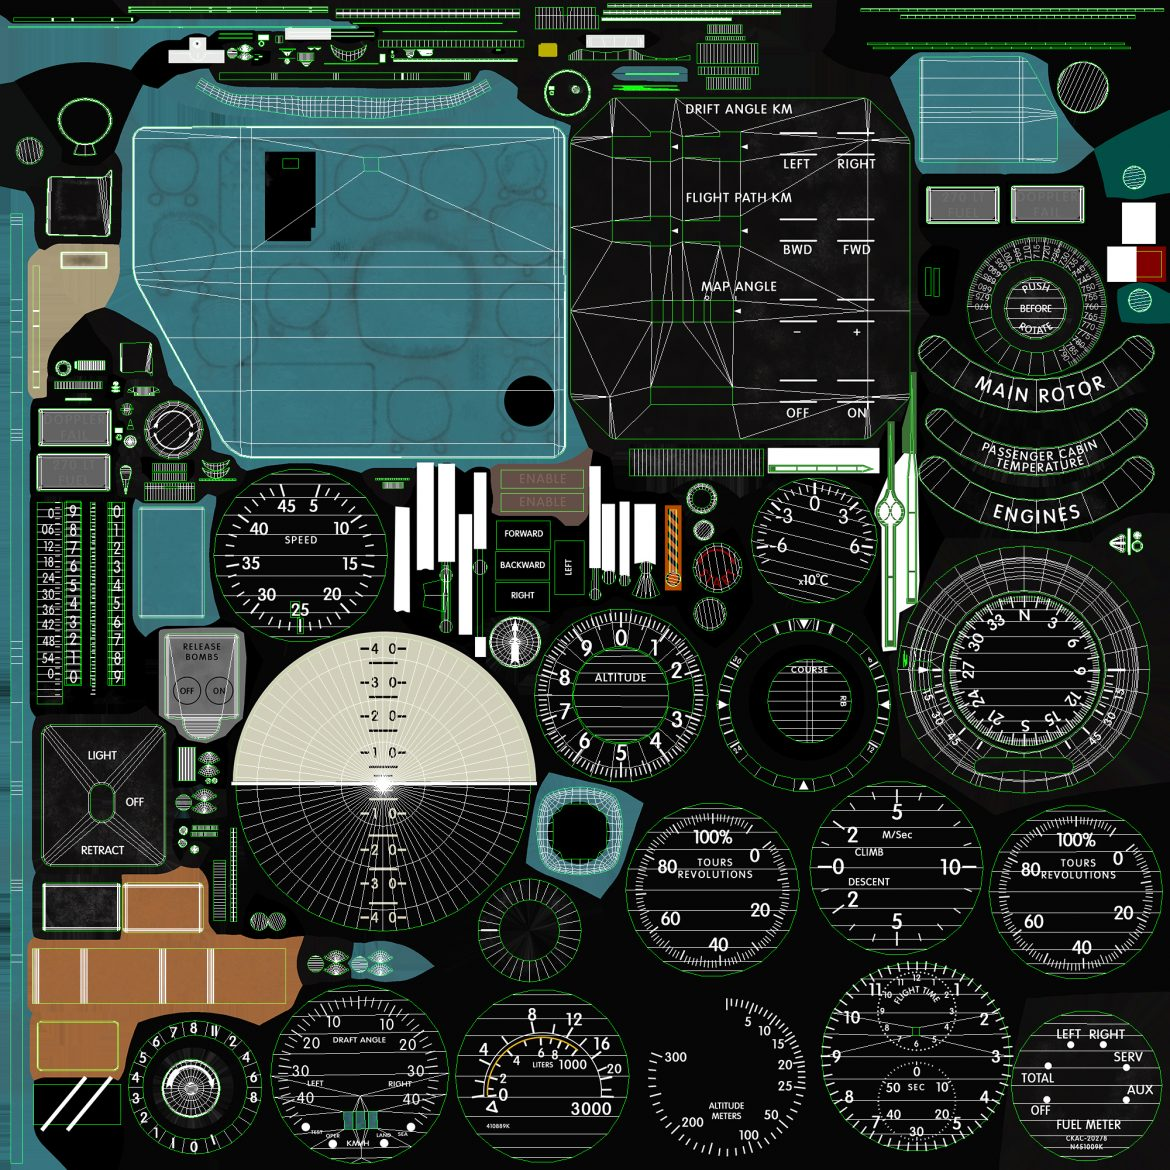 mi-8mt mi-17mt panel boards english 3d model 3ds max fbx obj 301985